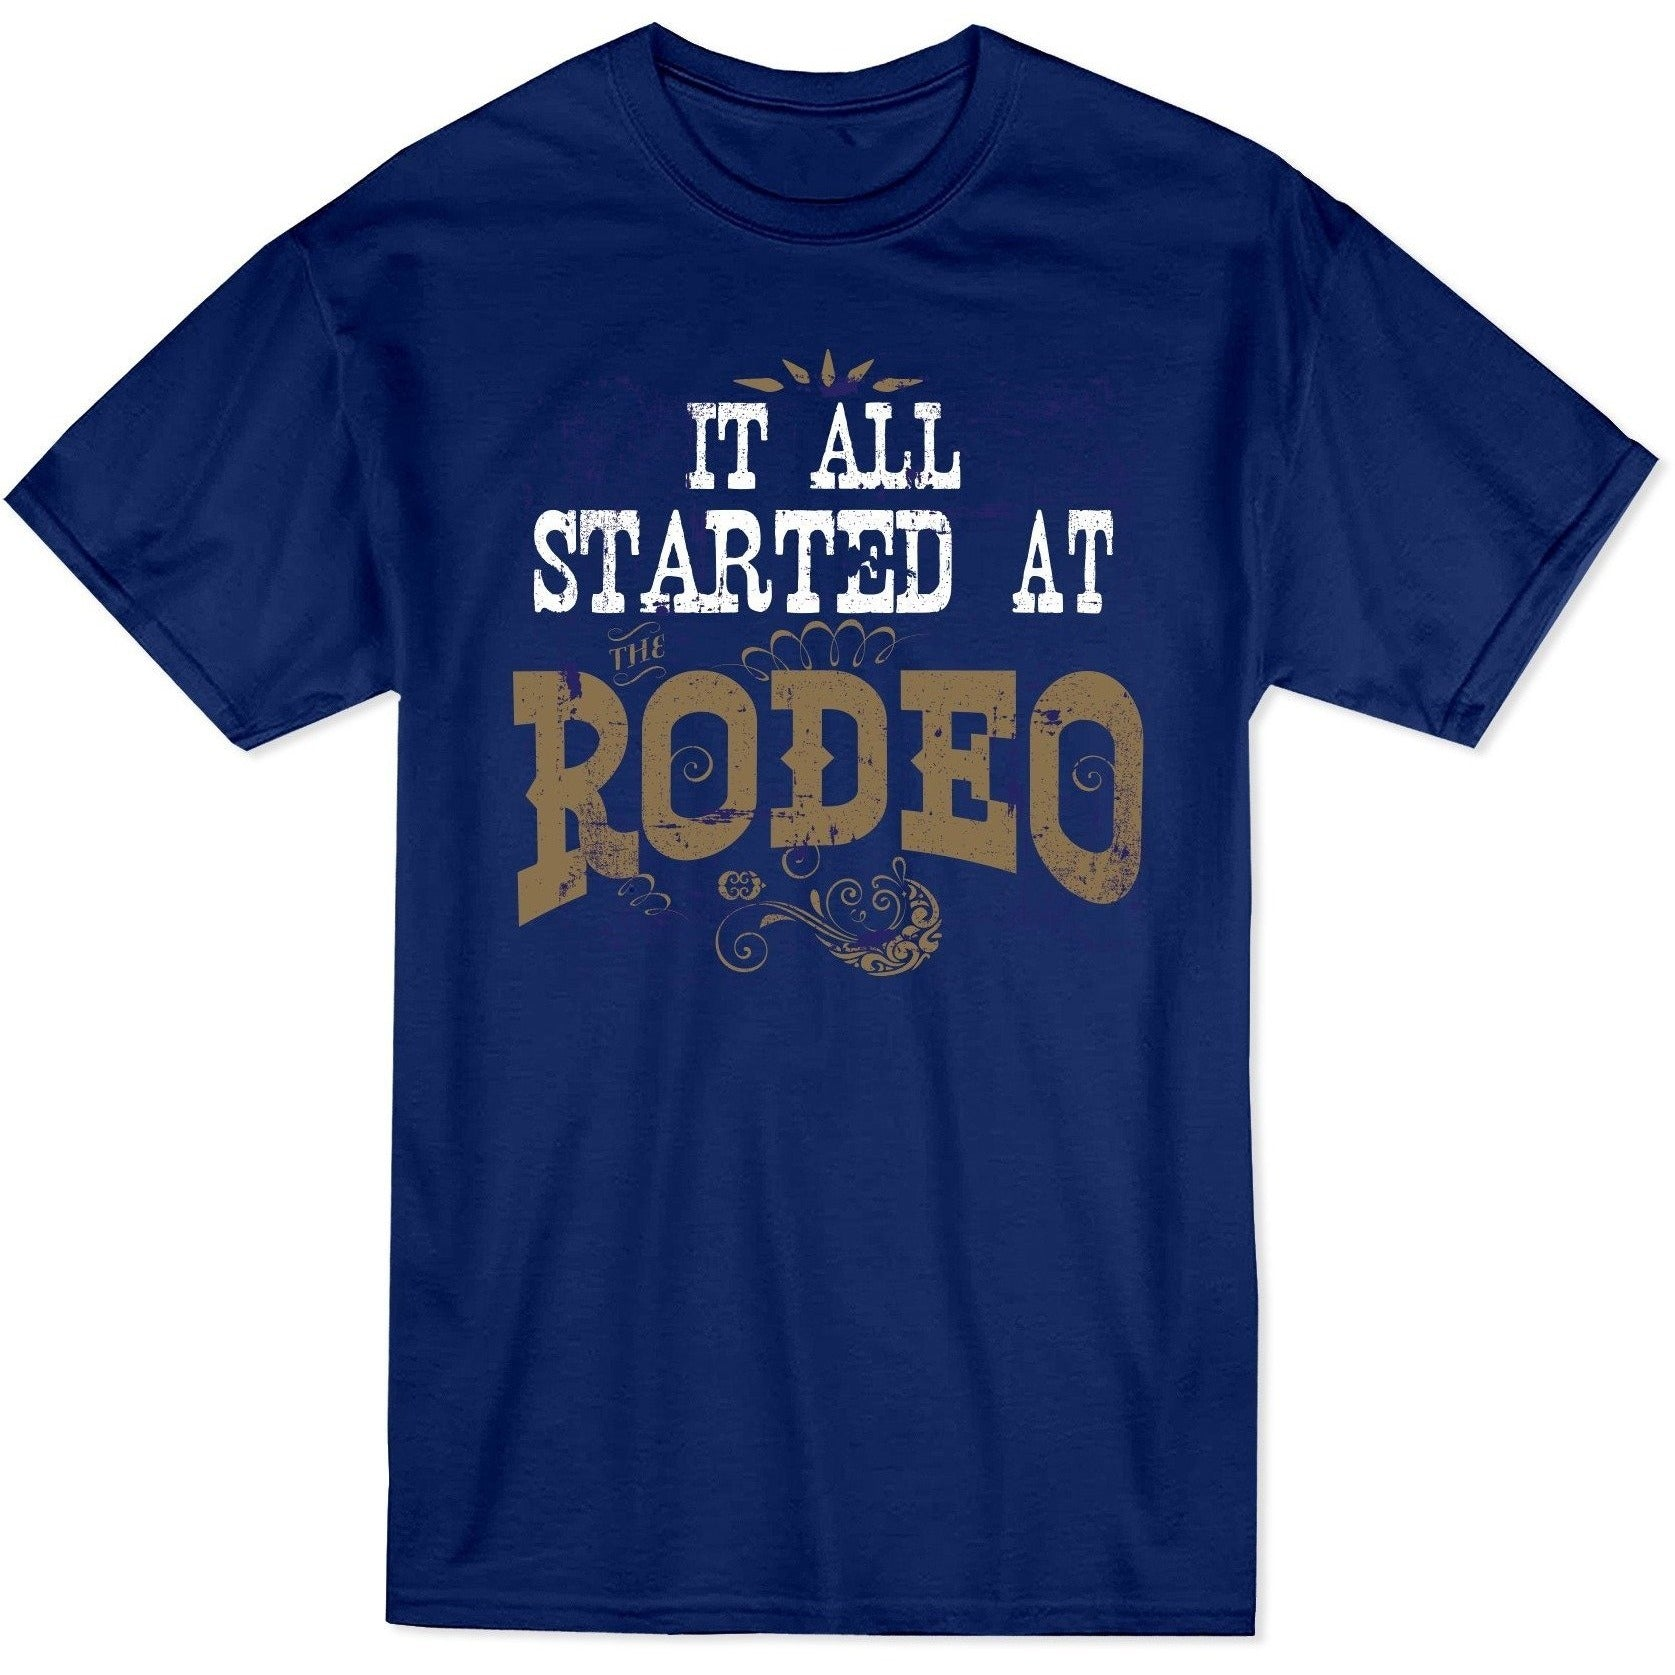 Rodeo - It all started at the Rodeo